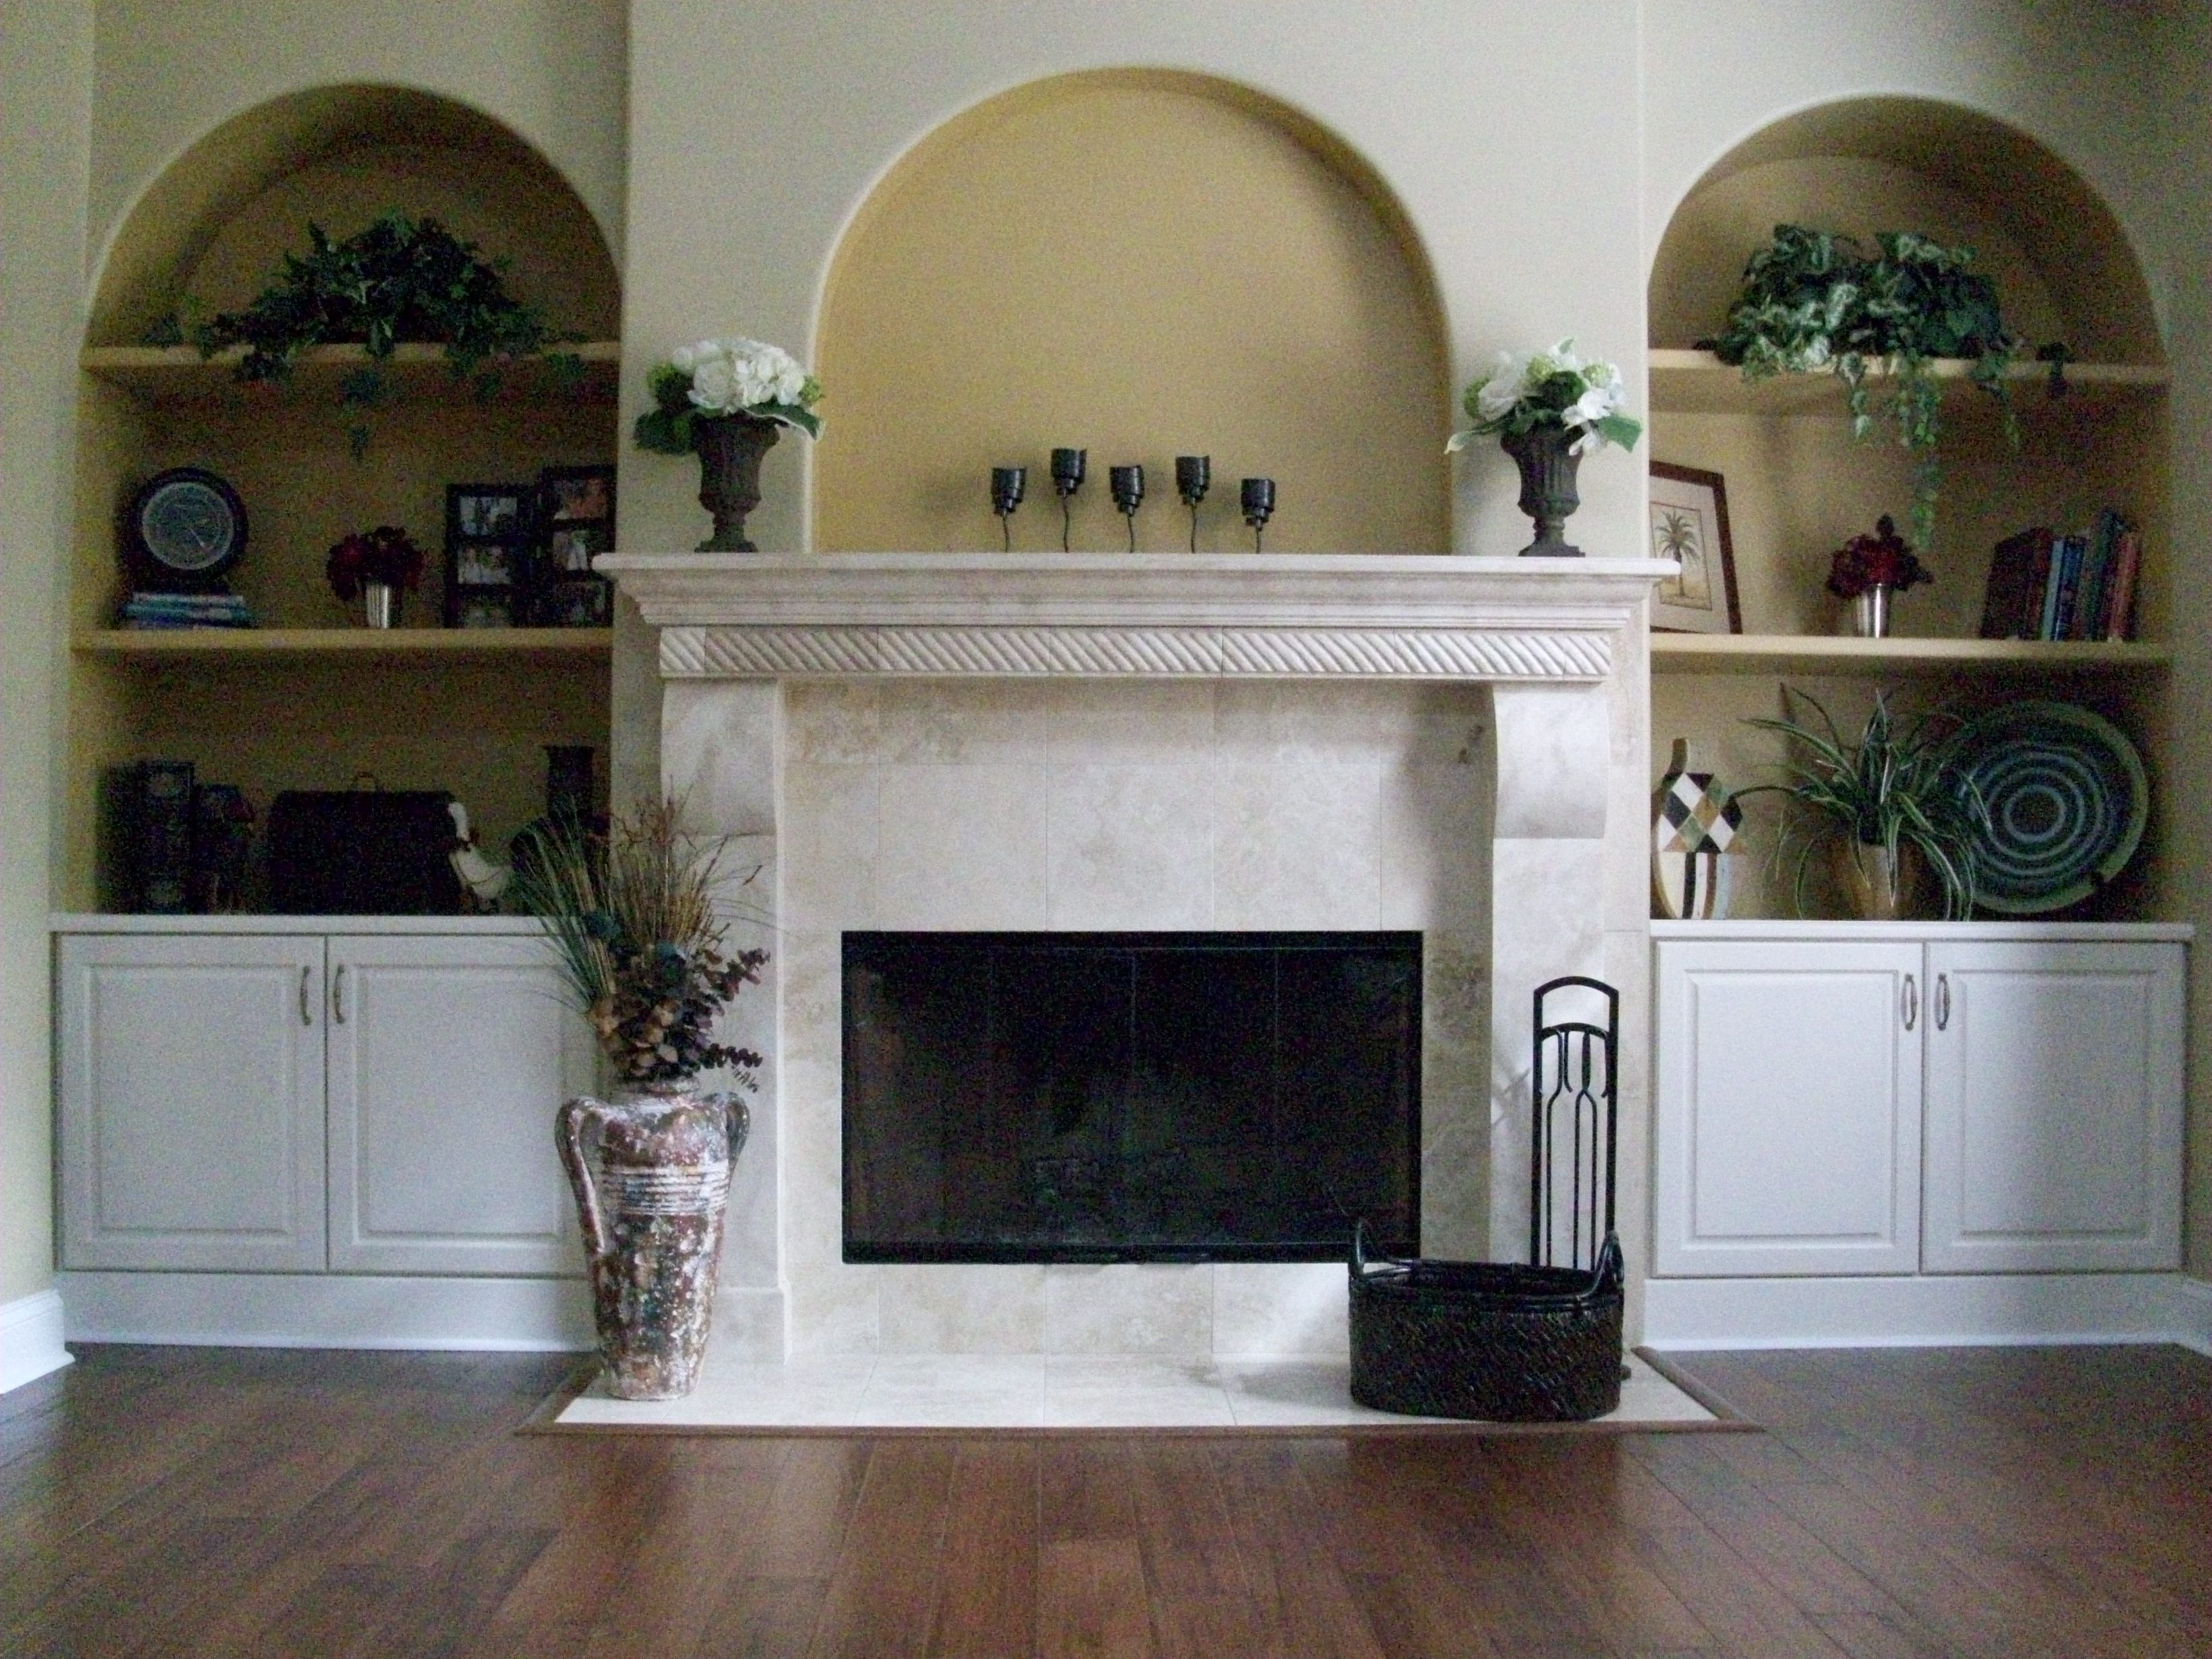 Fireplace+Built+In+Cabinets - Fireplace With Built In Cabinets And Custom Mantle